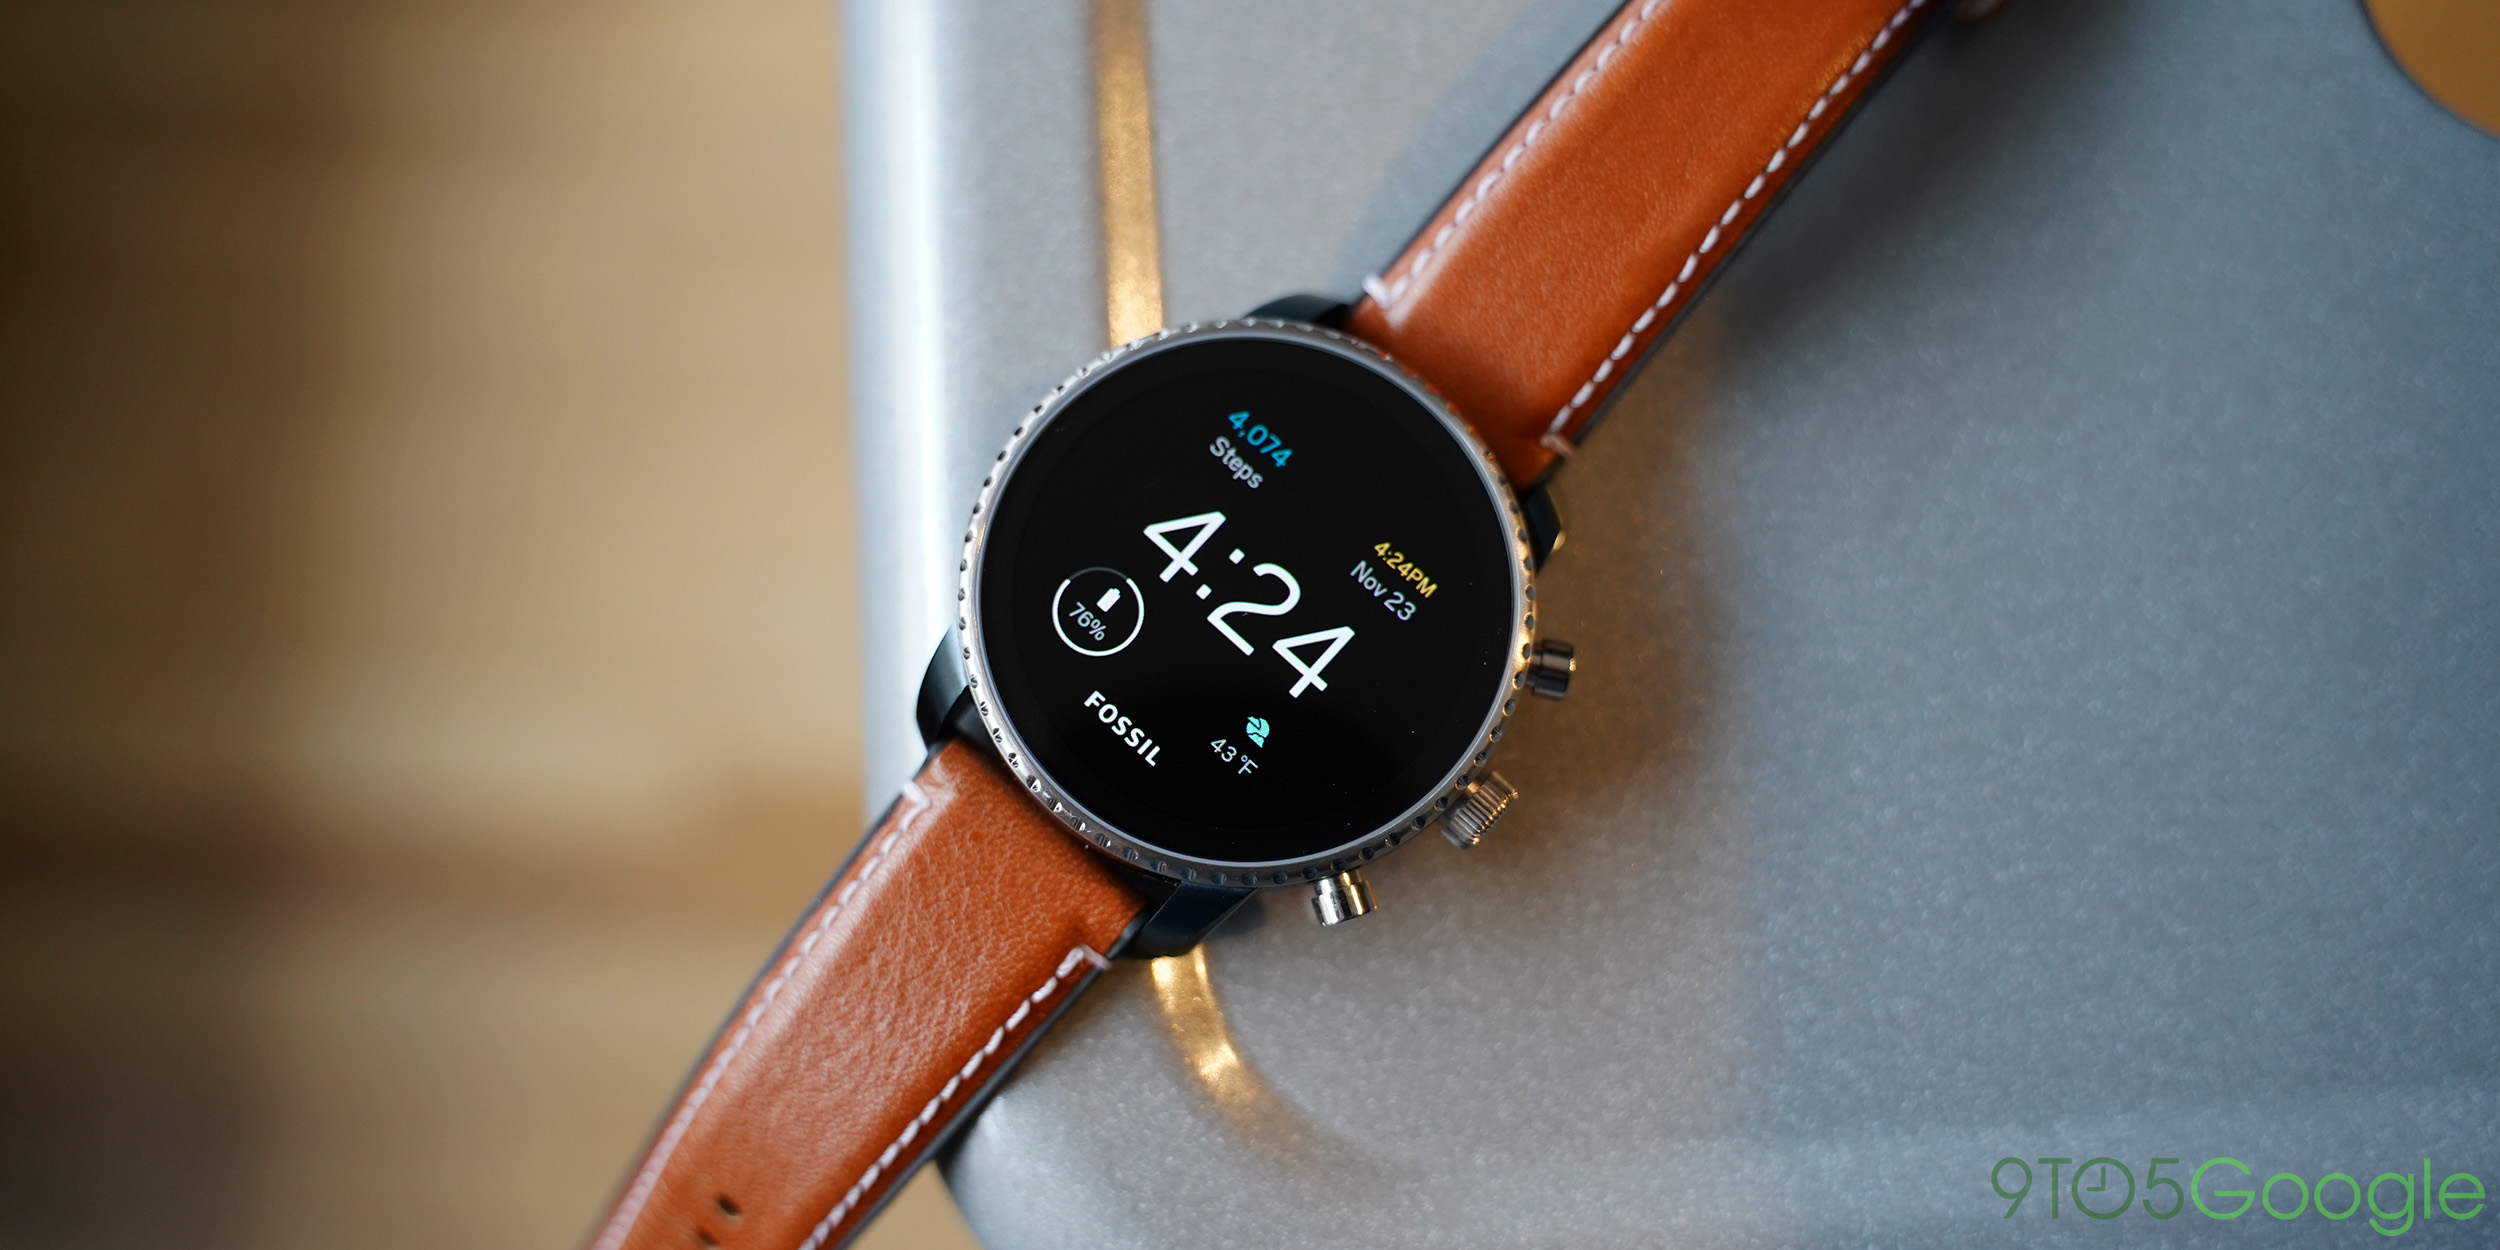 Best Android Smartwatches Wear Os Samsung More 9to5google